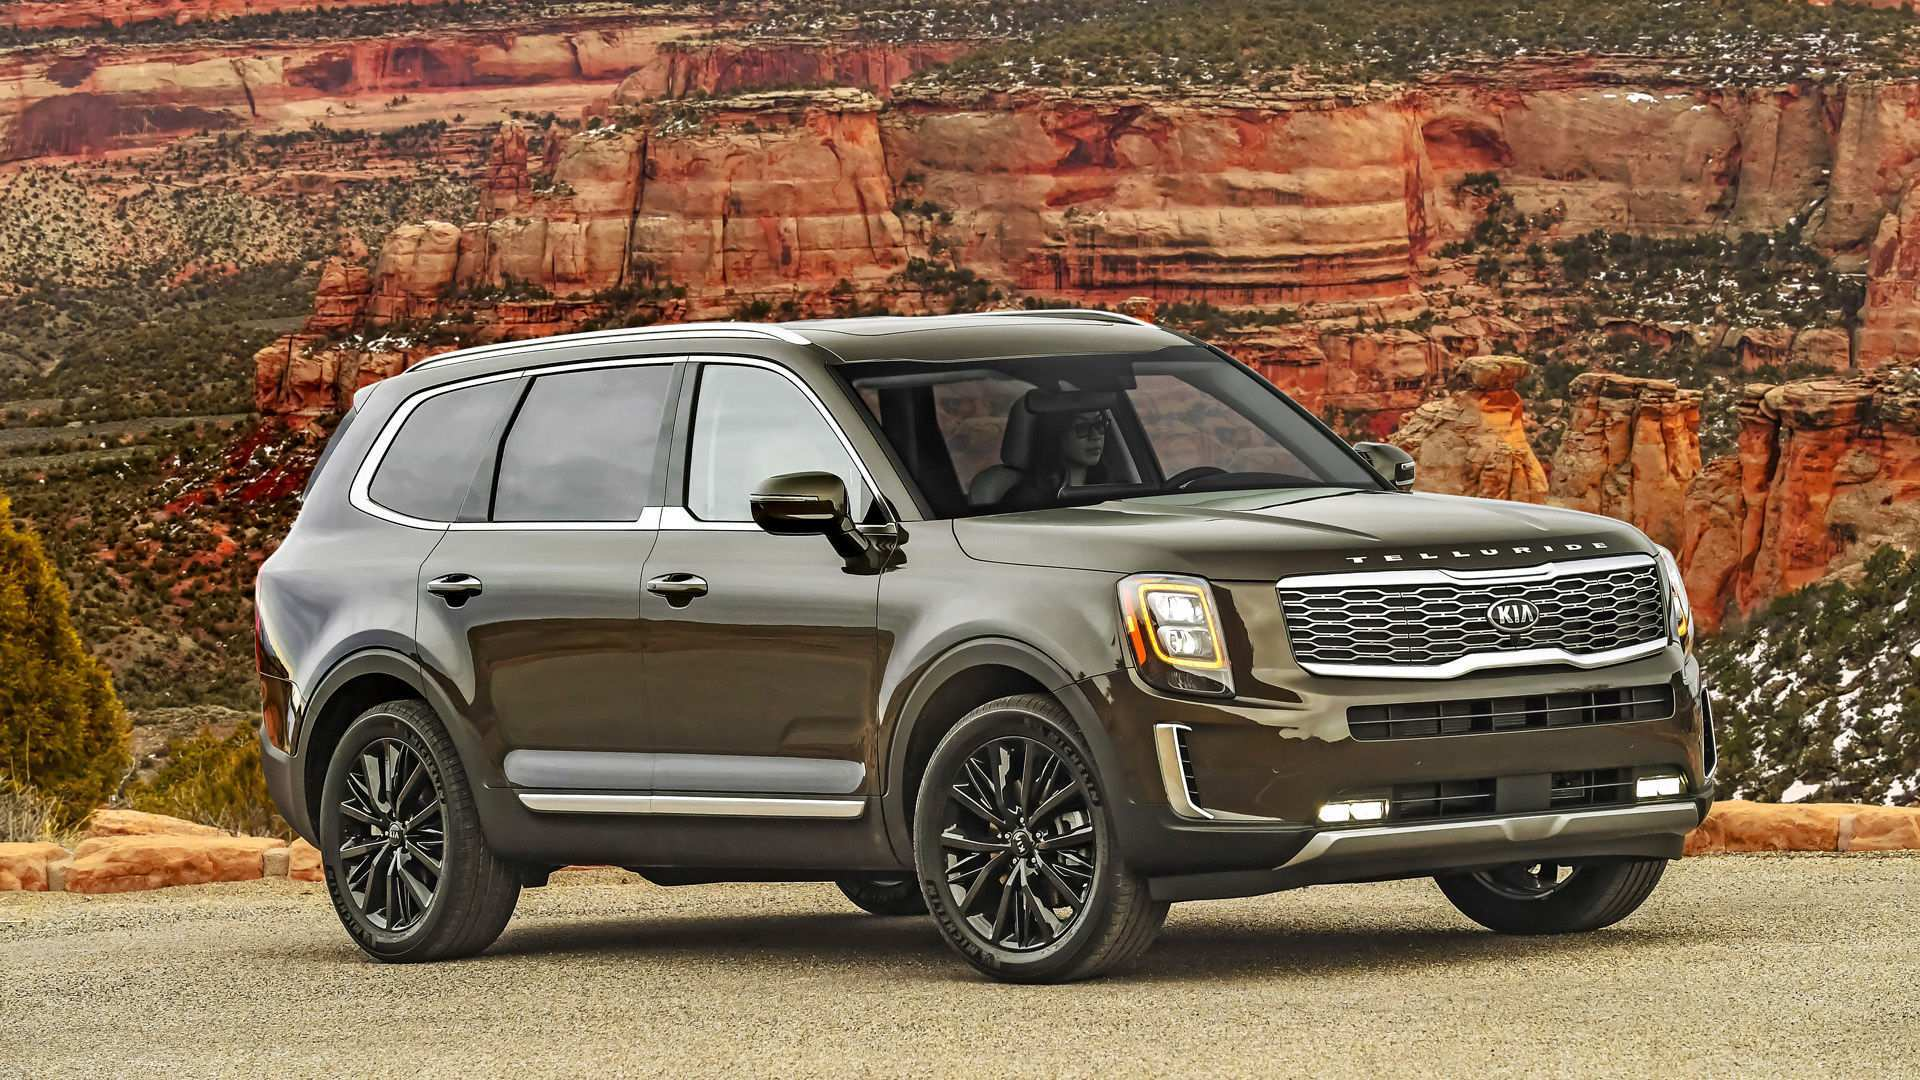 46 Gallery of 2020 Kia Telluride Build And Price Pricing with 2020 Kia Telluride Build And Price